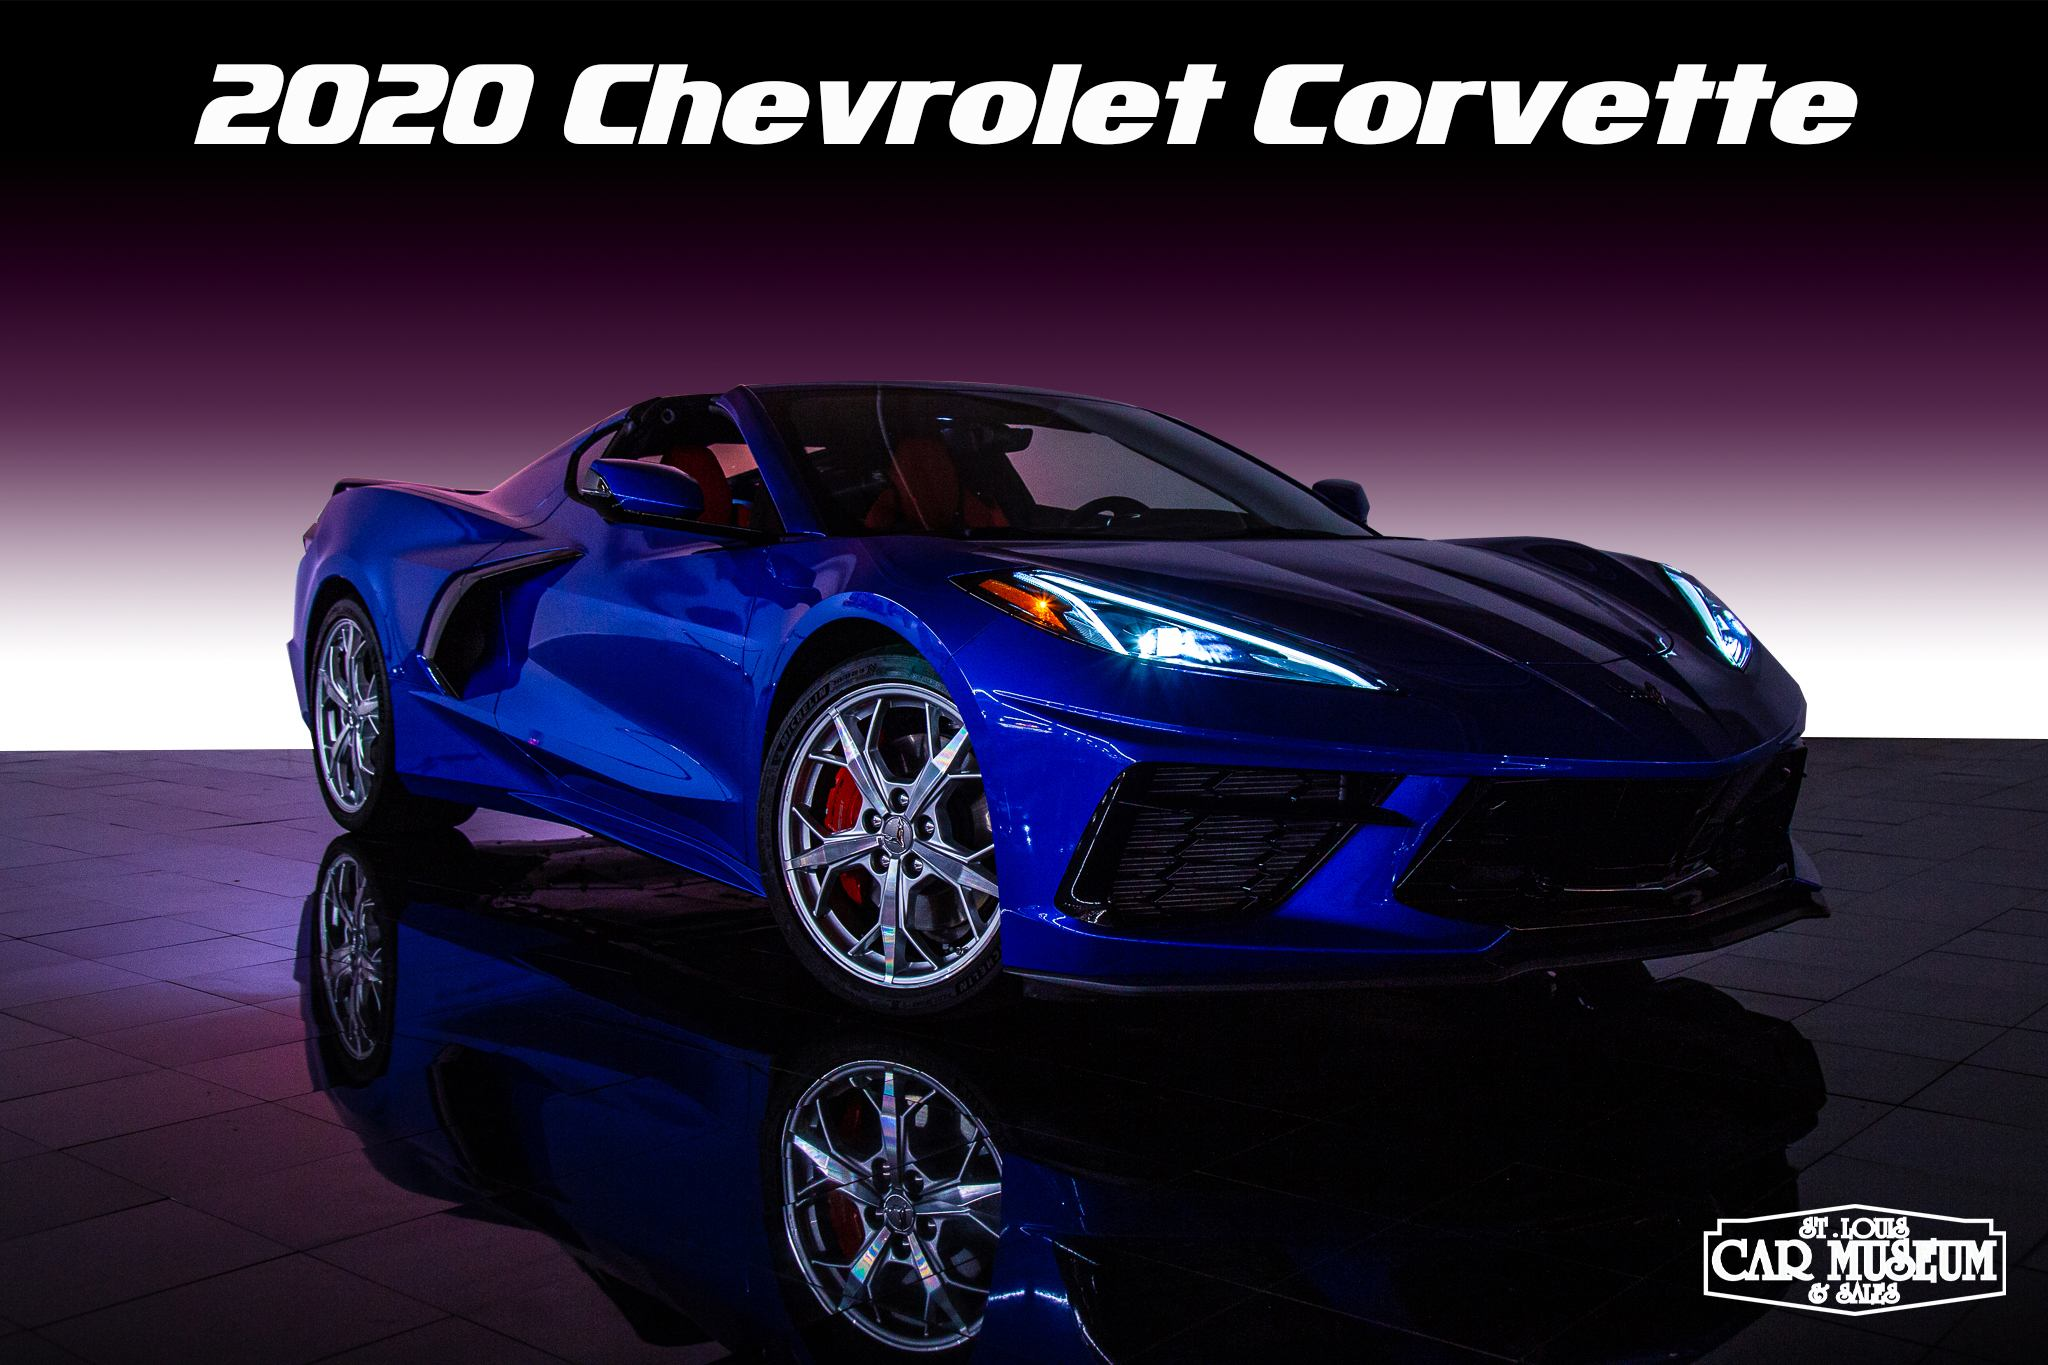 2020 Chevrolet Corvette wallpaper